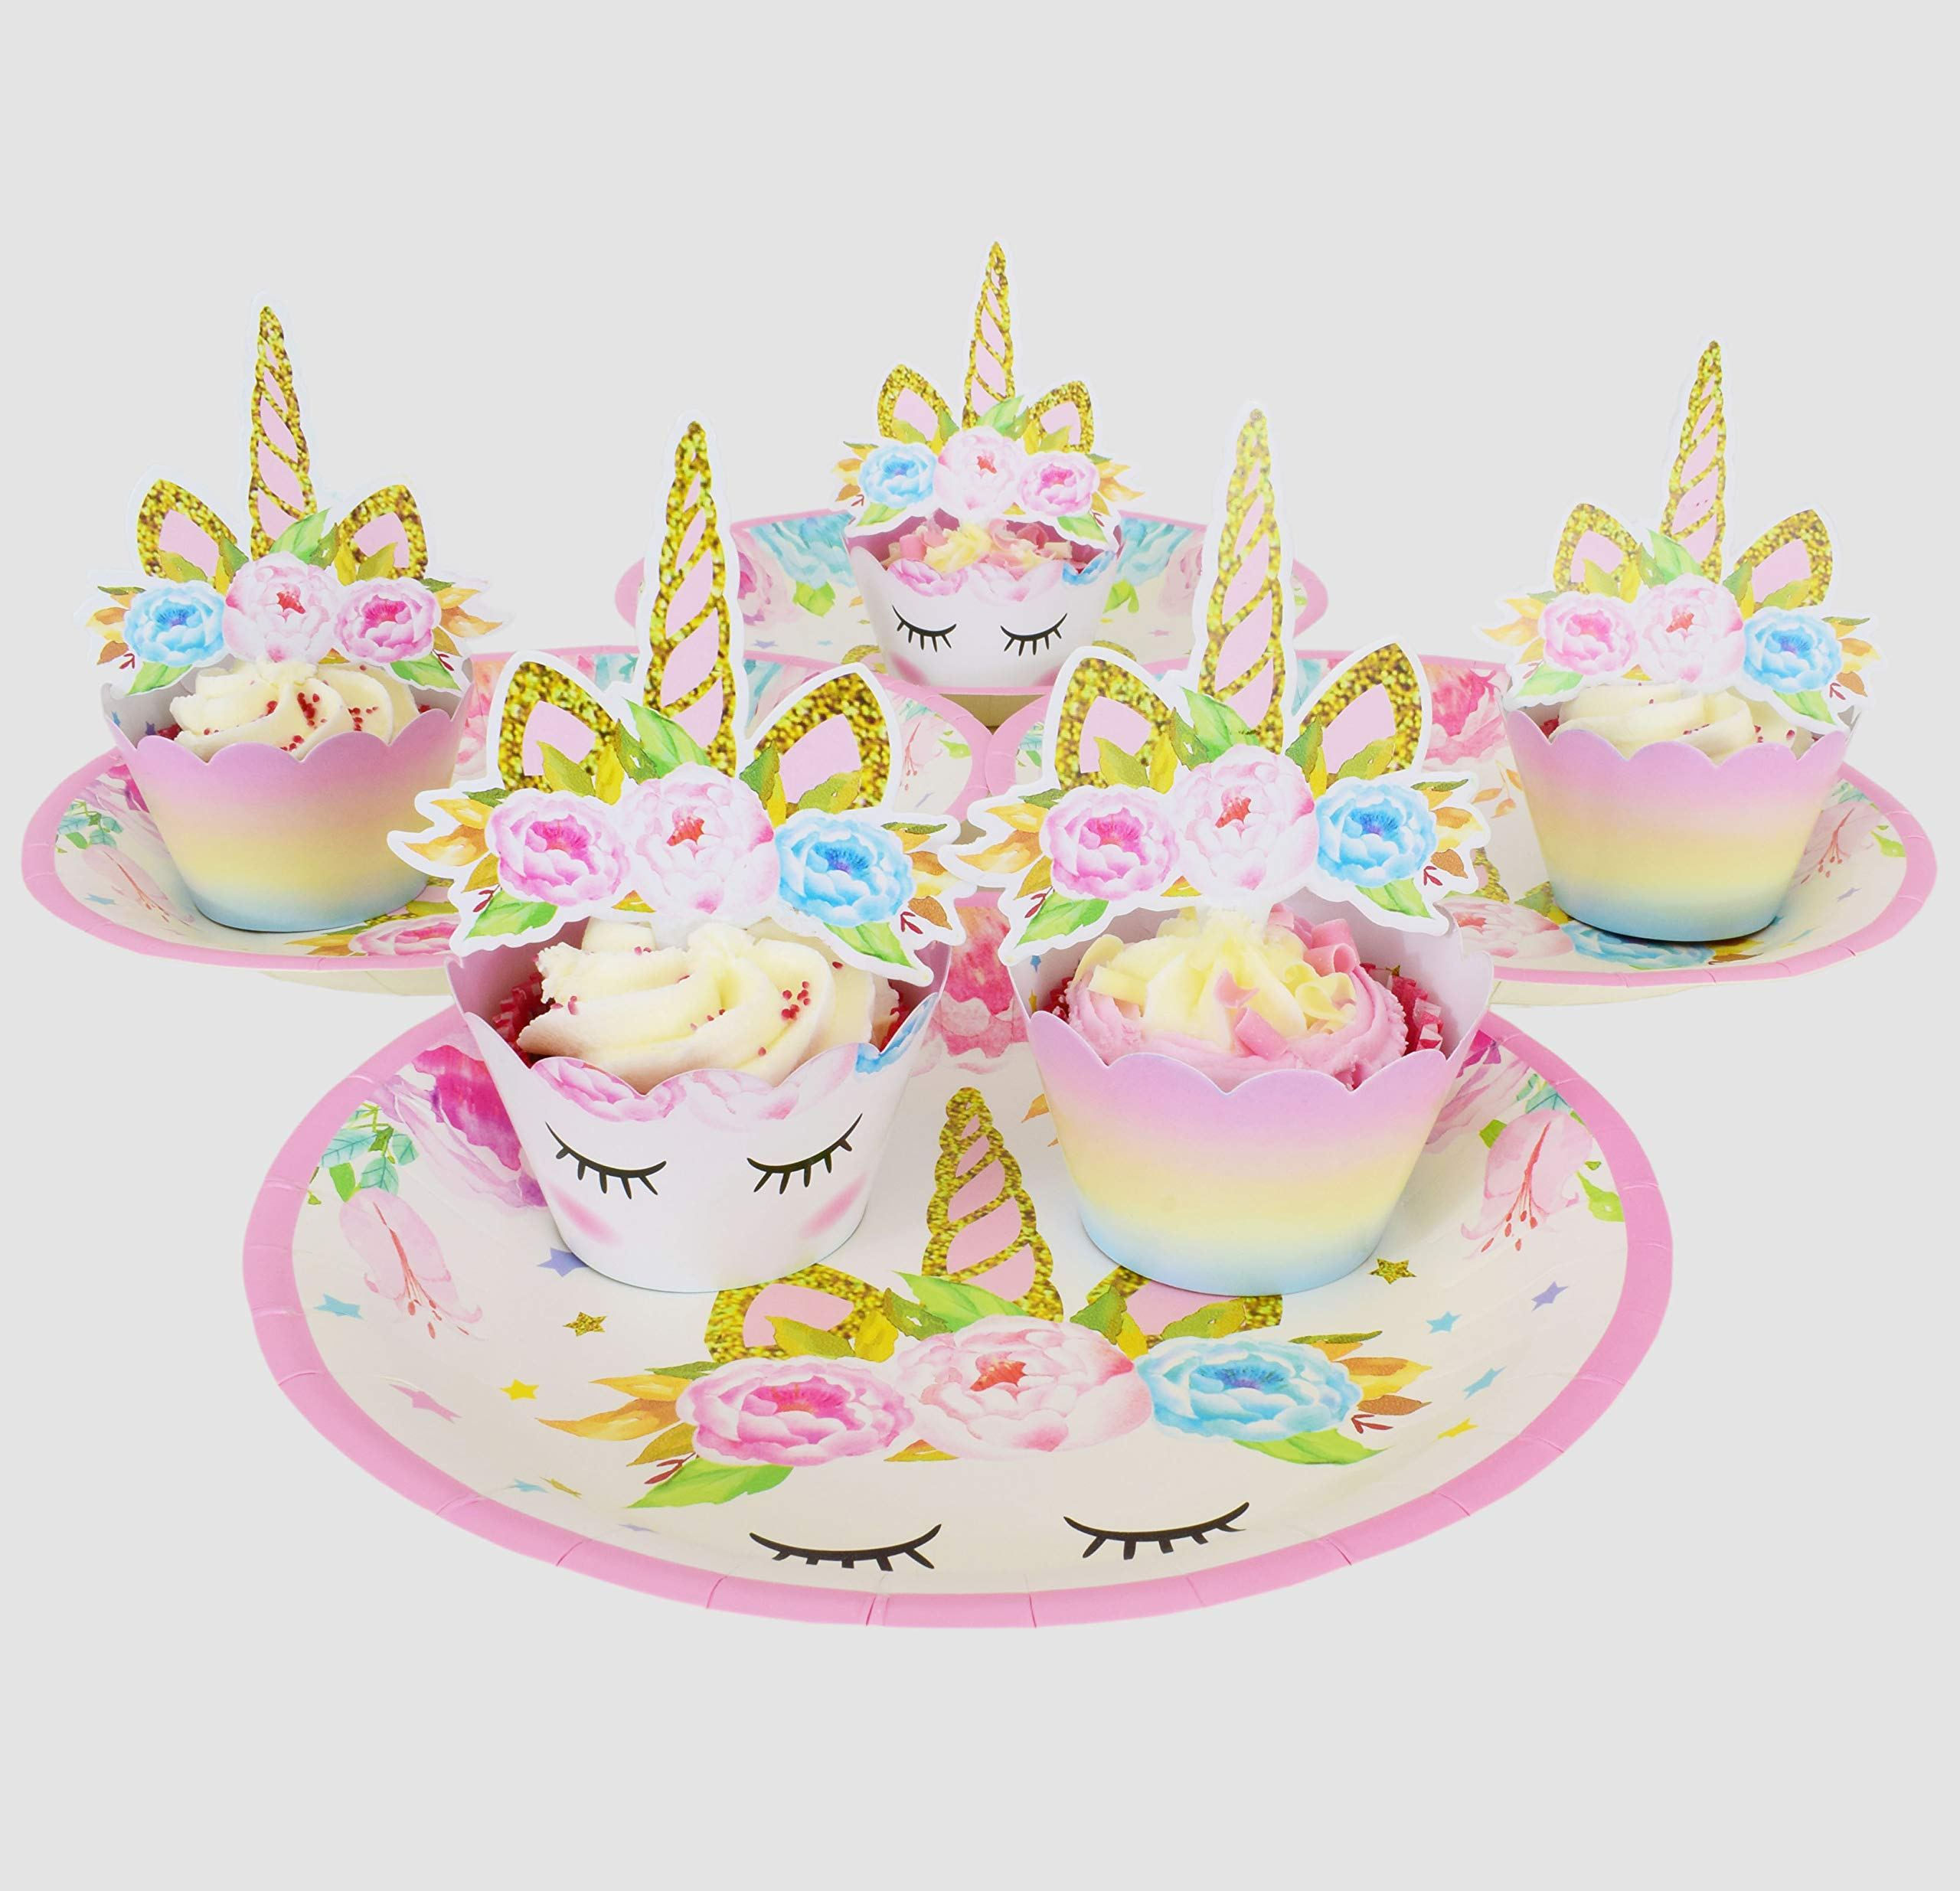 ecoZen Lifestyle Ultimate Unicorn Party Supplies and Plates for Girl Birthday | Best Value Unicorn Party Decorations Set… 8